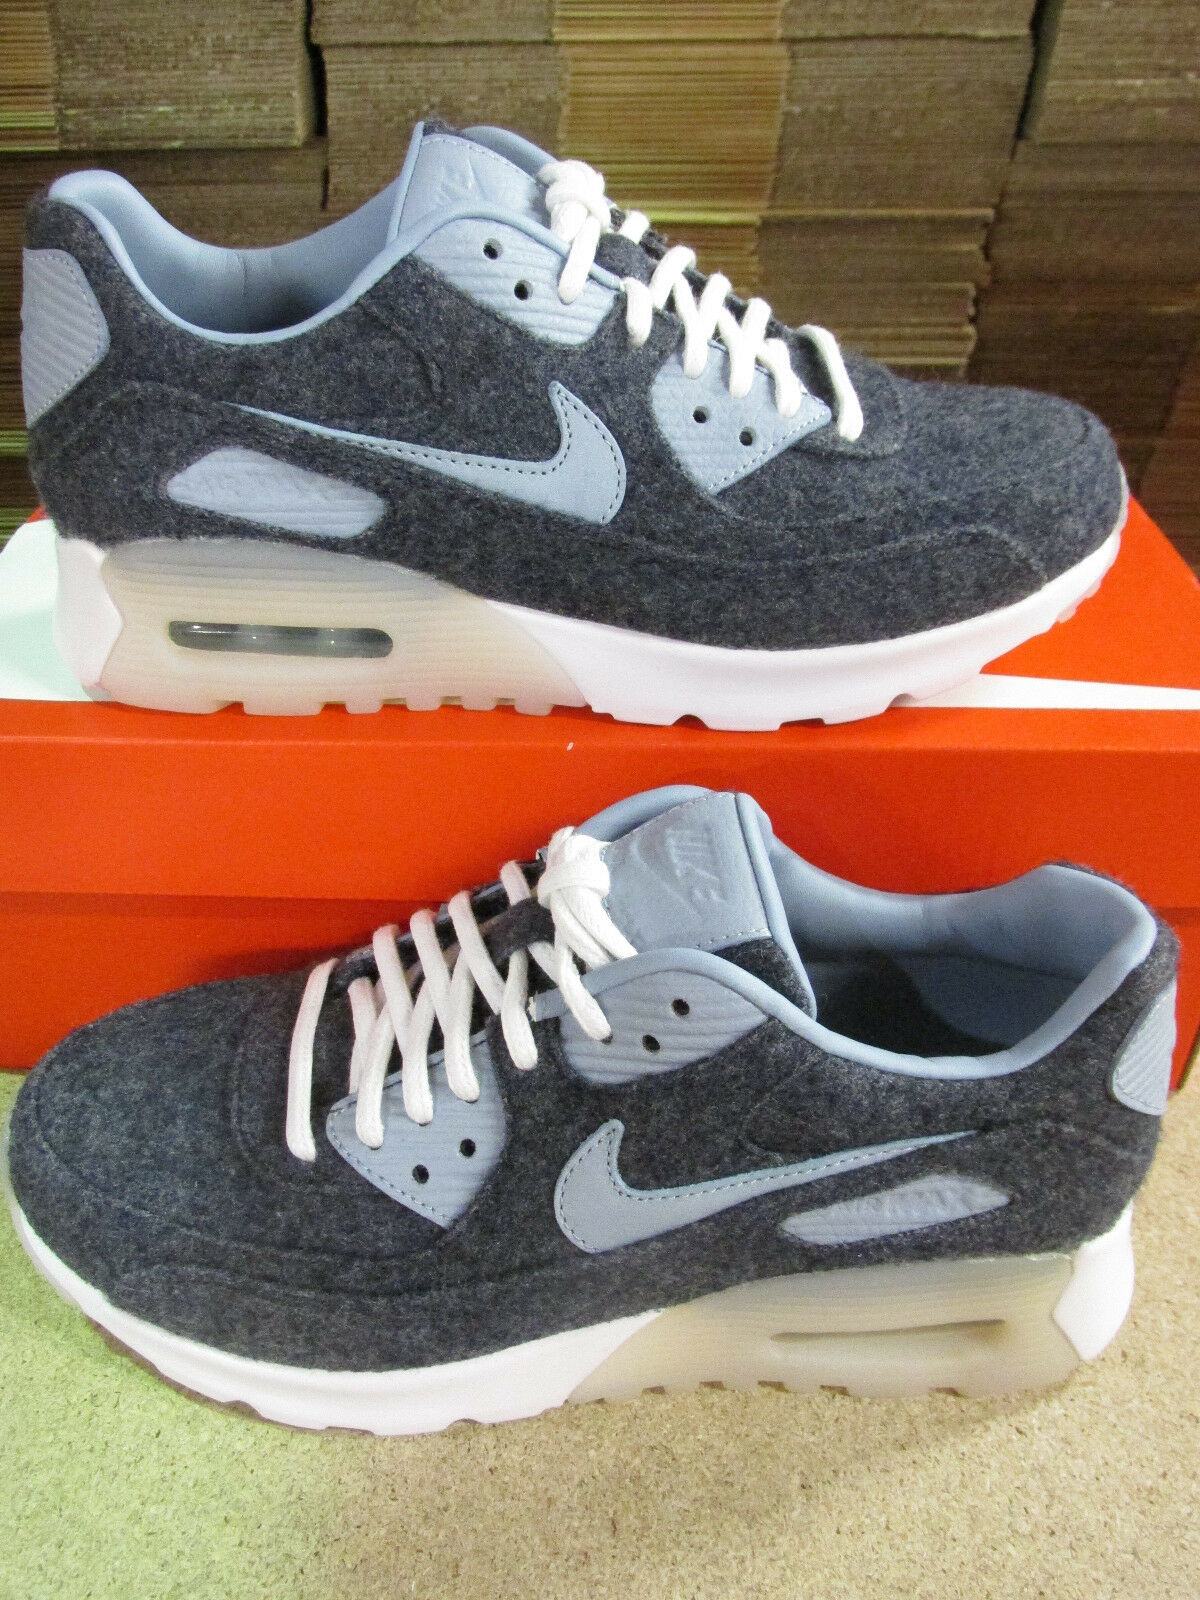 Nike Ultra Femme Air Max 90 Ultra Nike PRM fonctionnement Trainers 859522 400 Baskets chaussures 5b2a23